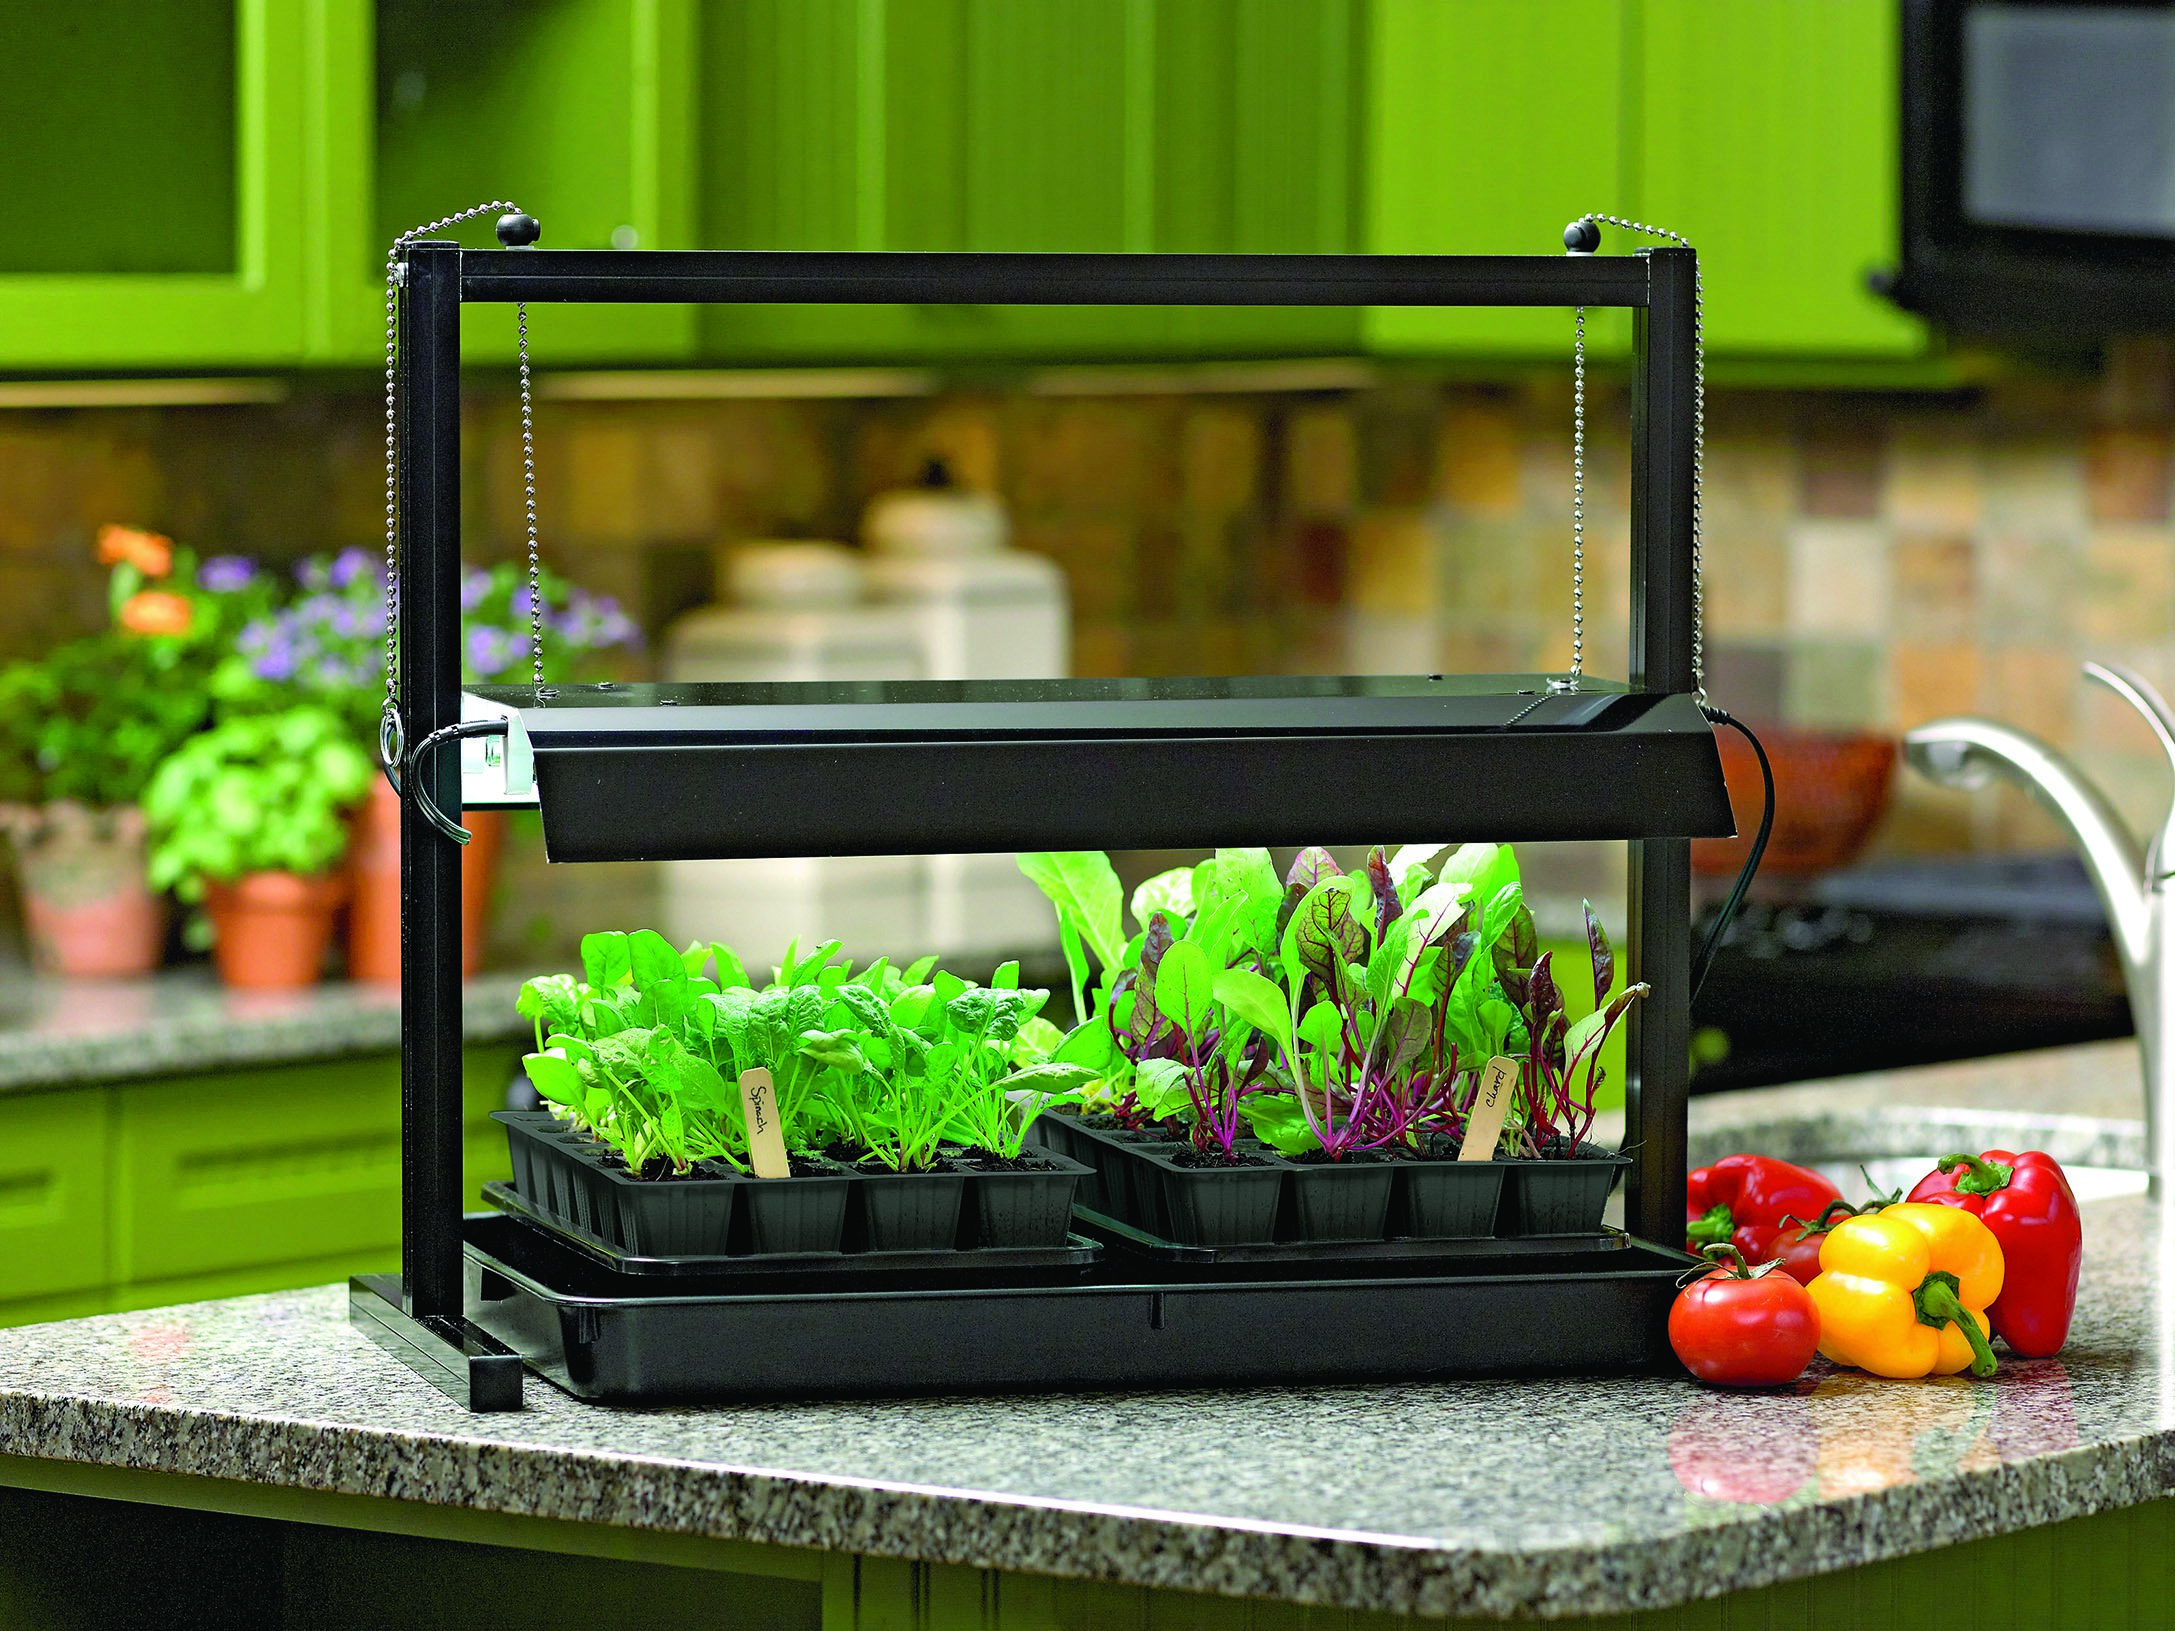 Energy Efficient, Long Lasting And High Intensity Grow Lights Promote The  Greatest Yields When Growing